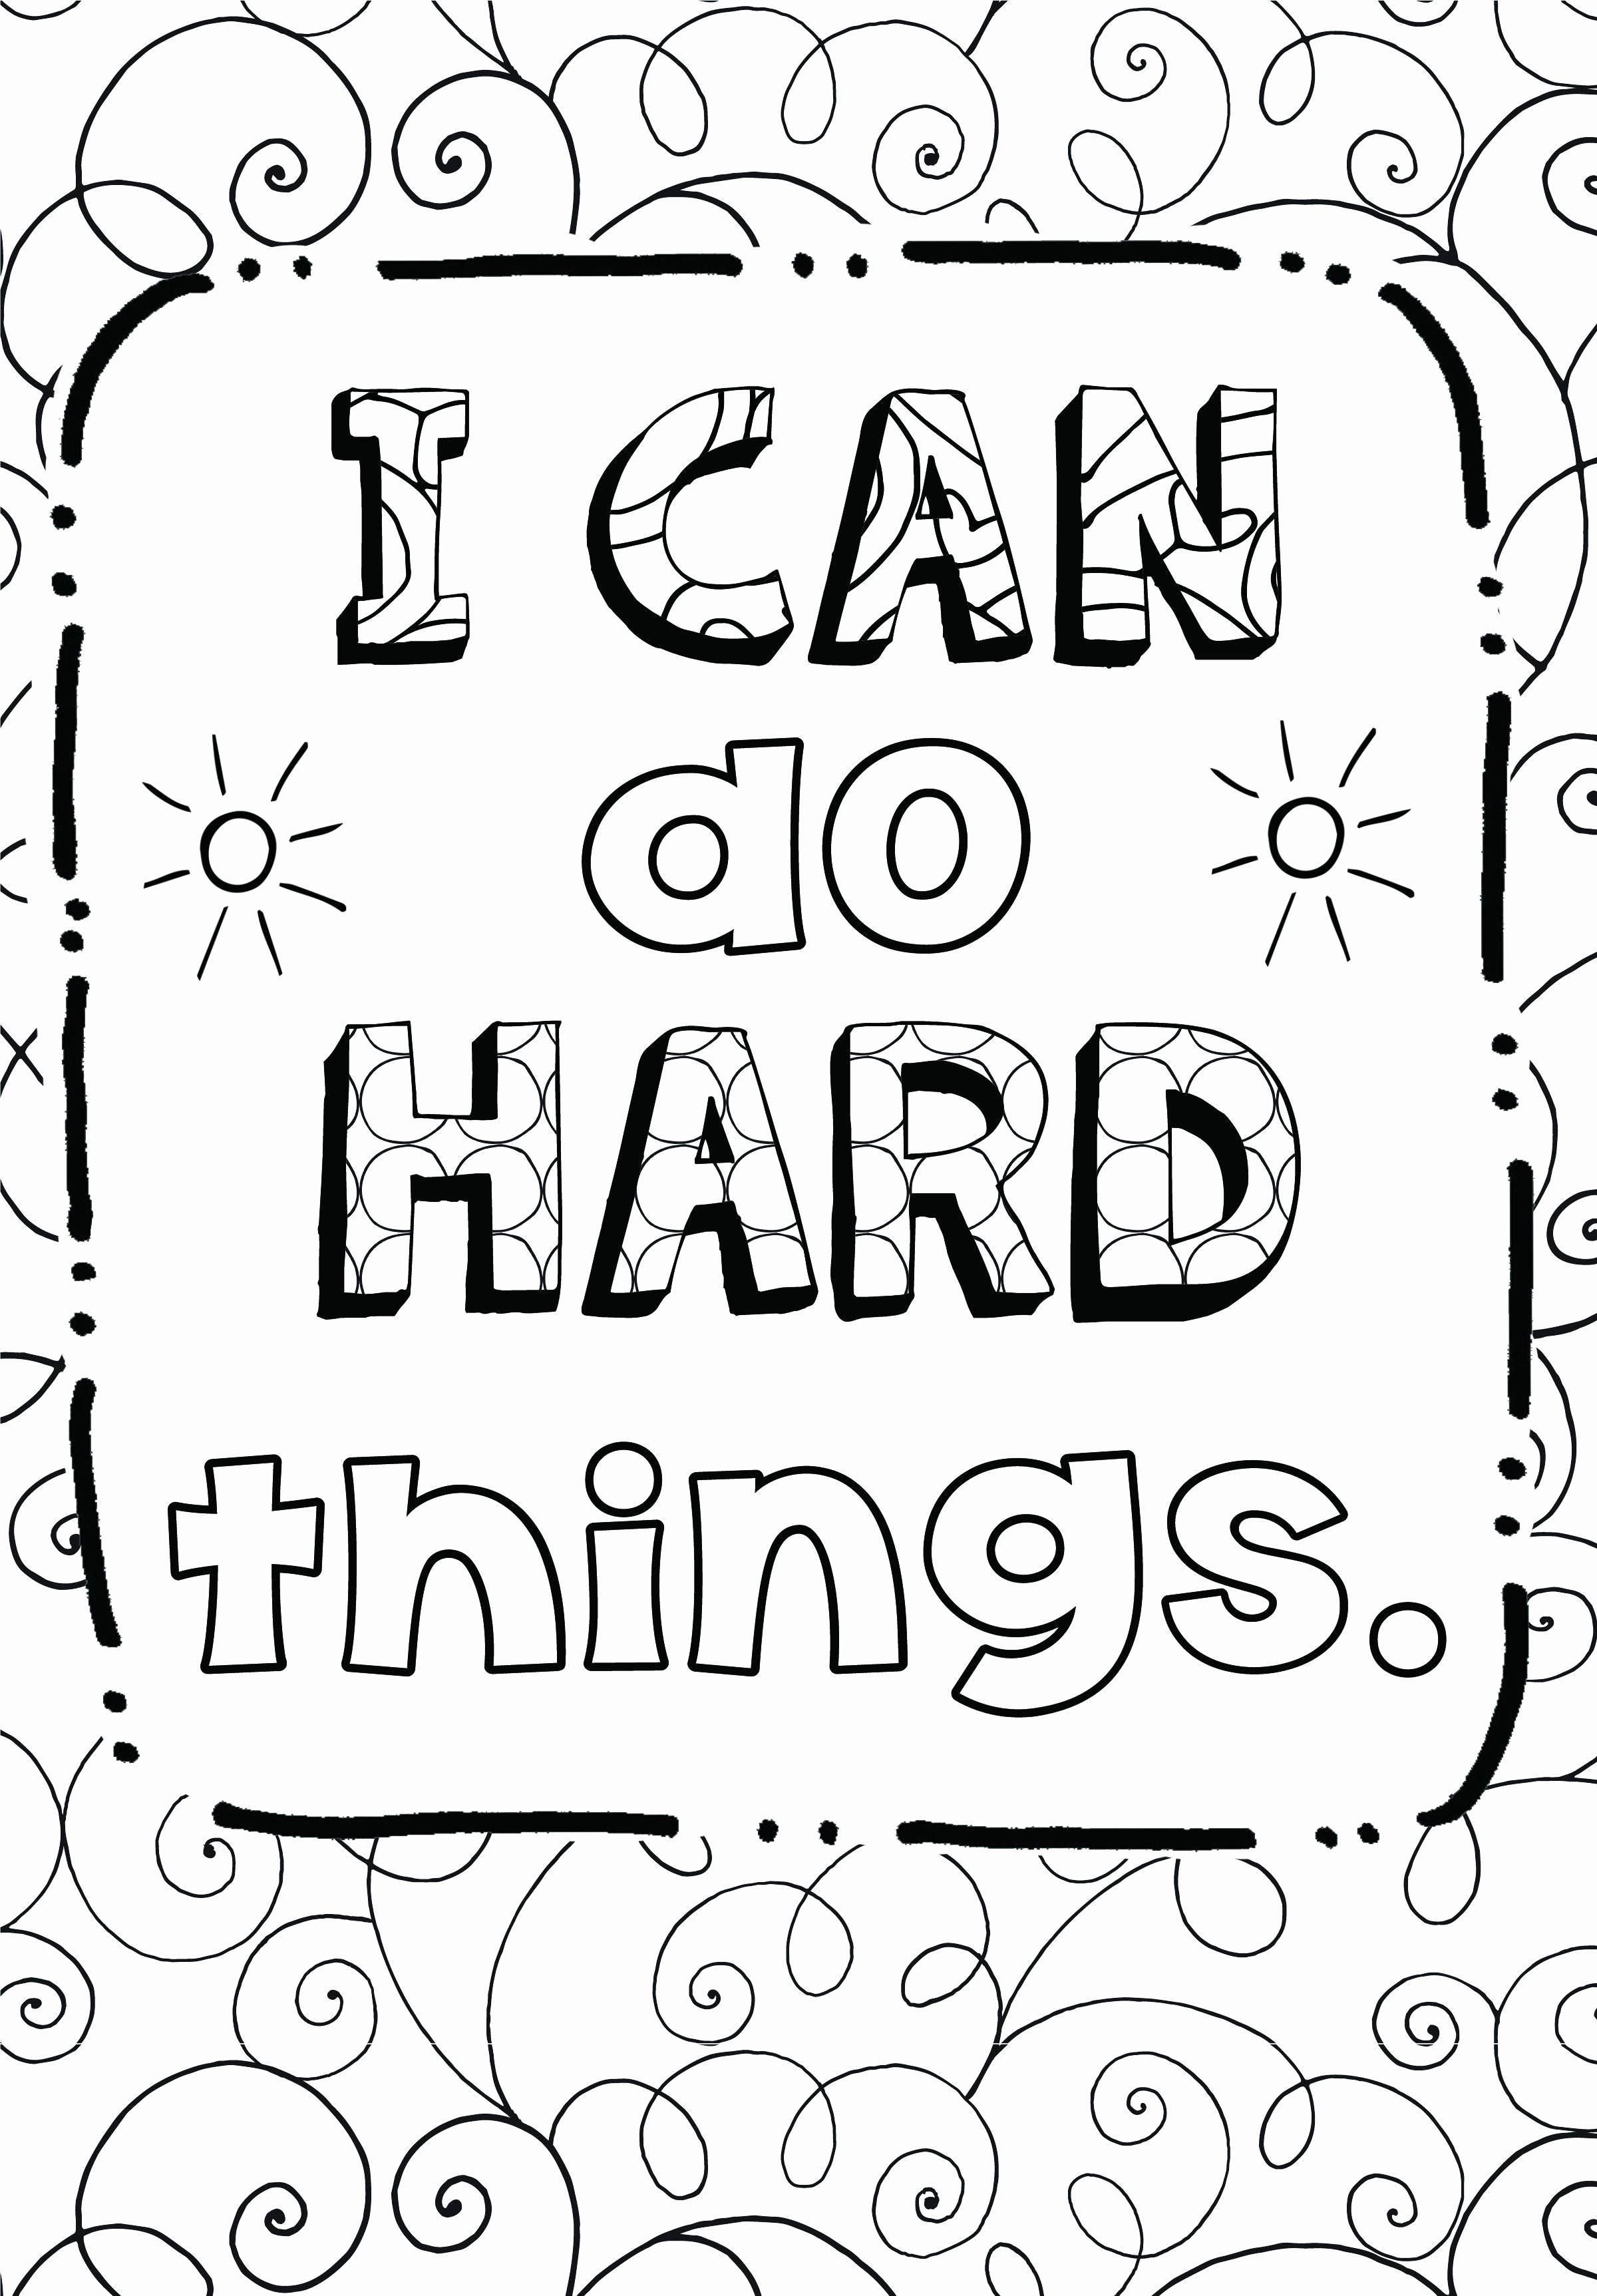 Disney Quote Coloring Pages Gcssi Coloring Pages Teaching Growth Mindset Quote Coloring Pages Growth Mindset Quotes